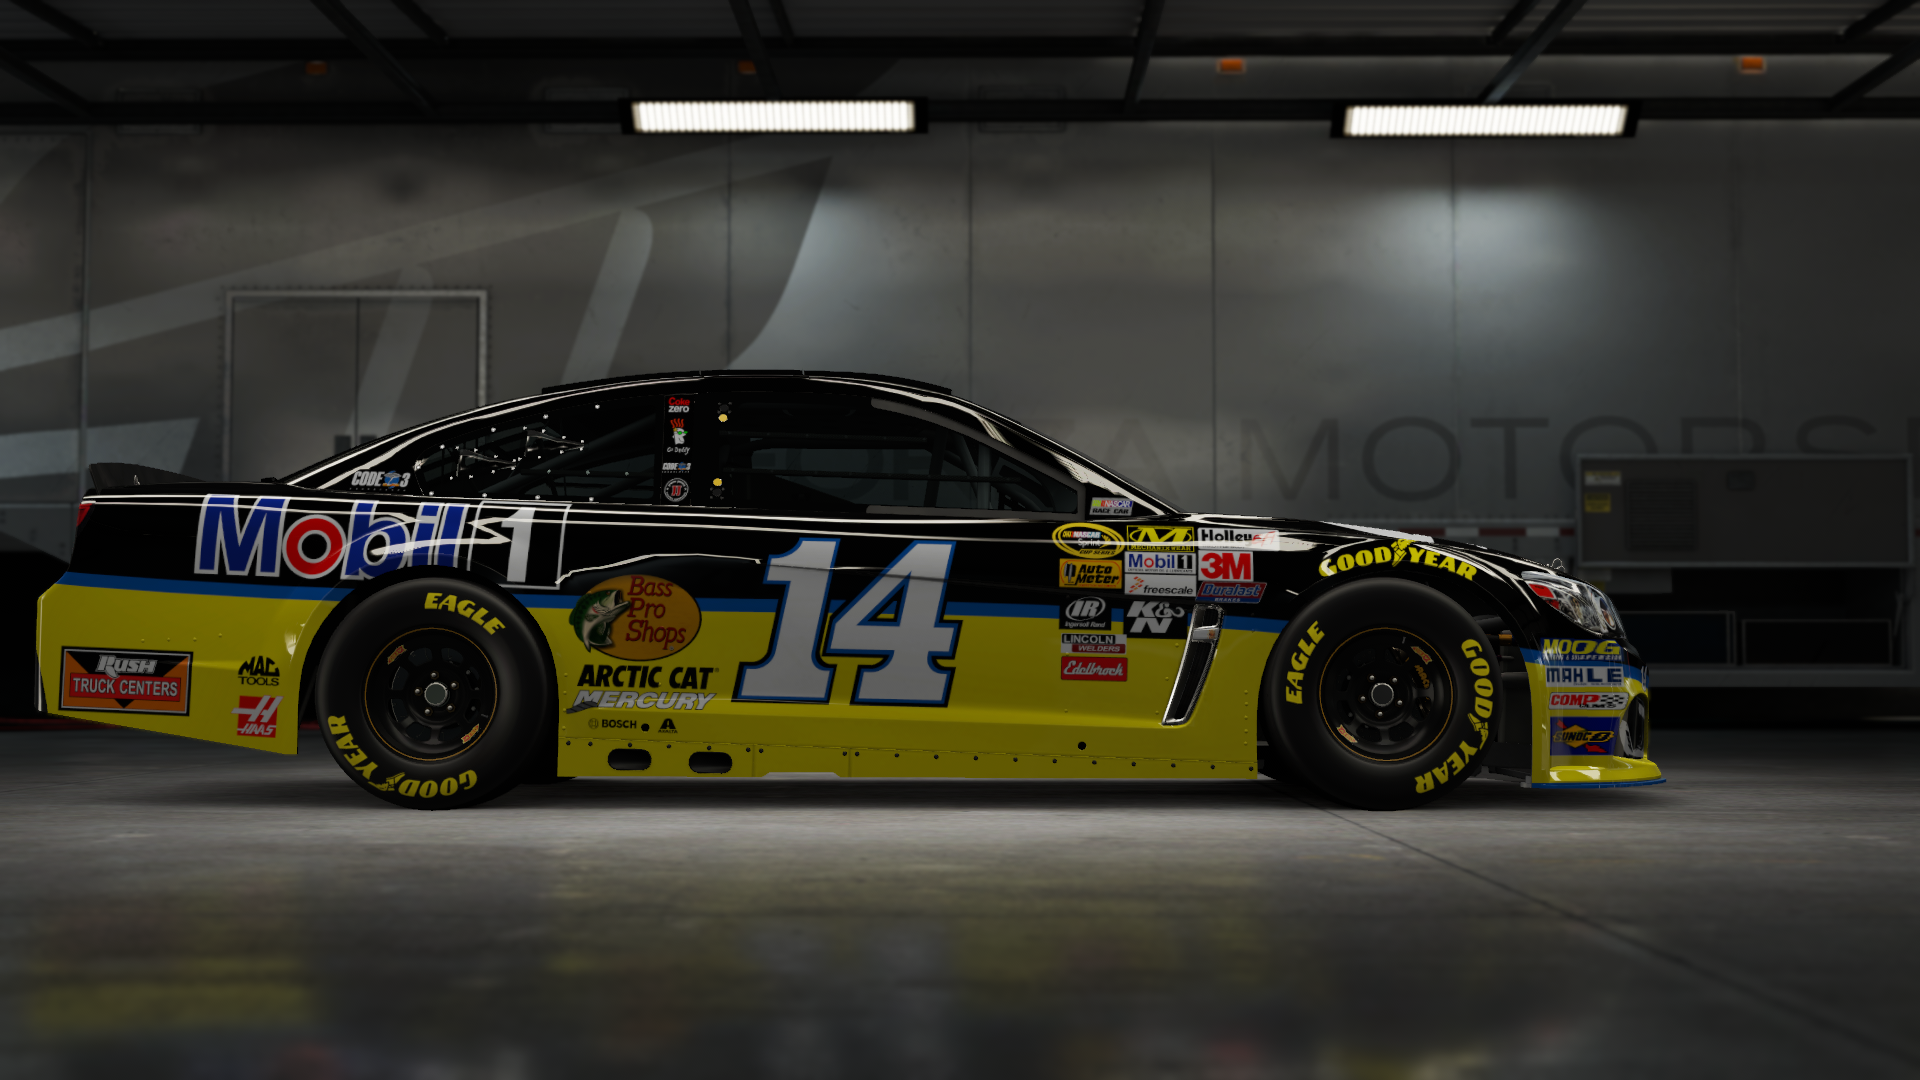 On the #14 Stewart-Haas Racing Mobil 1 Super Sport, Made by SweedishThunder